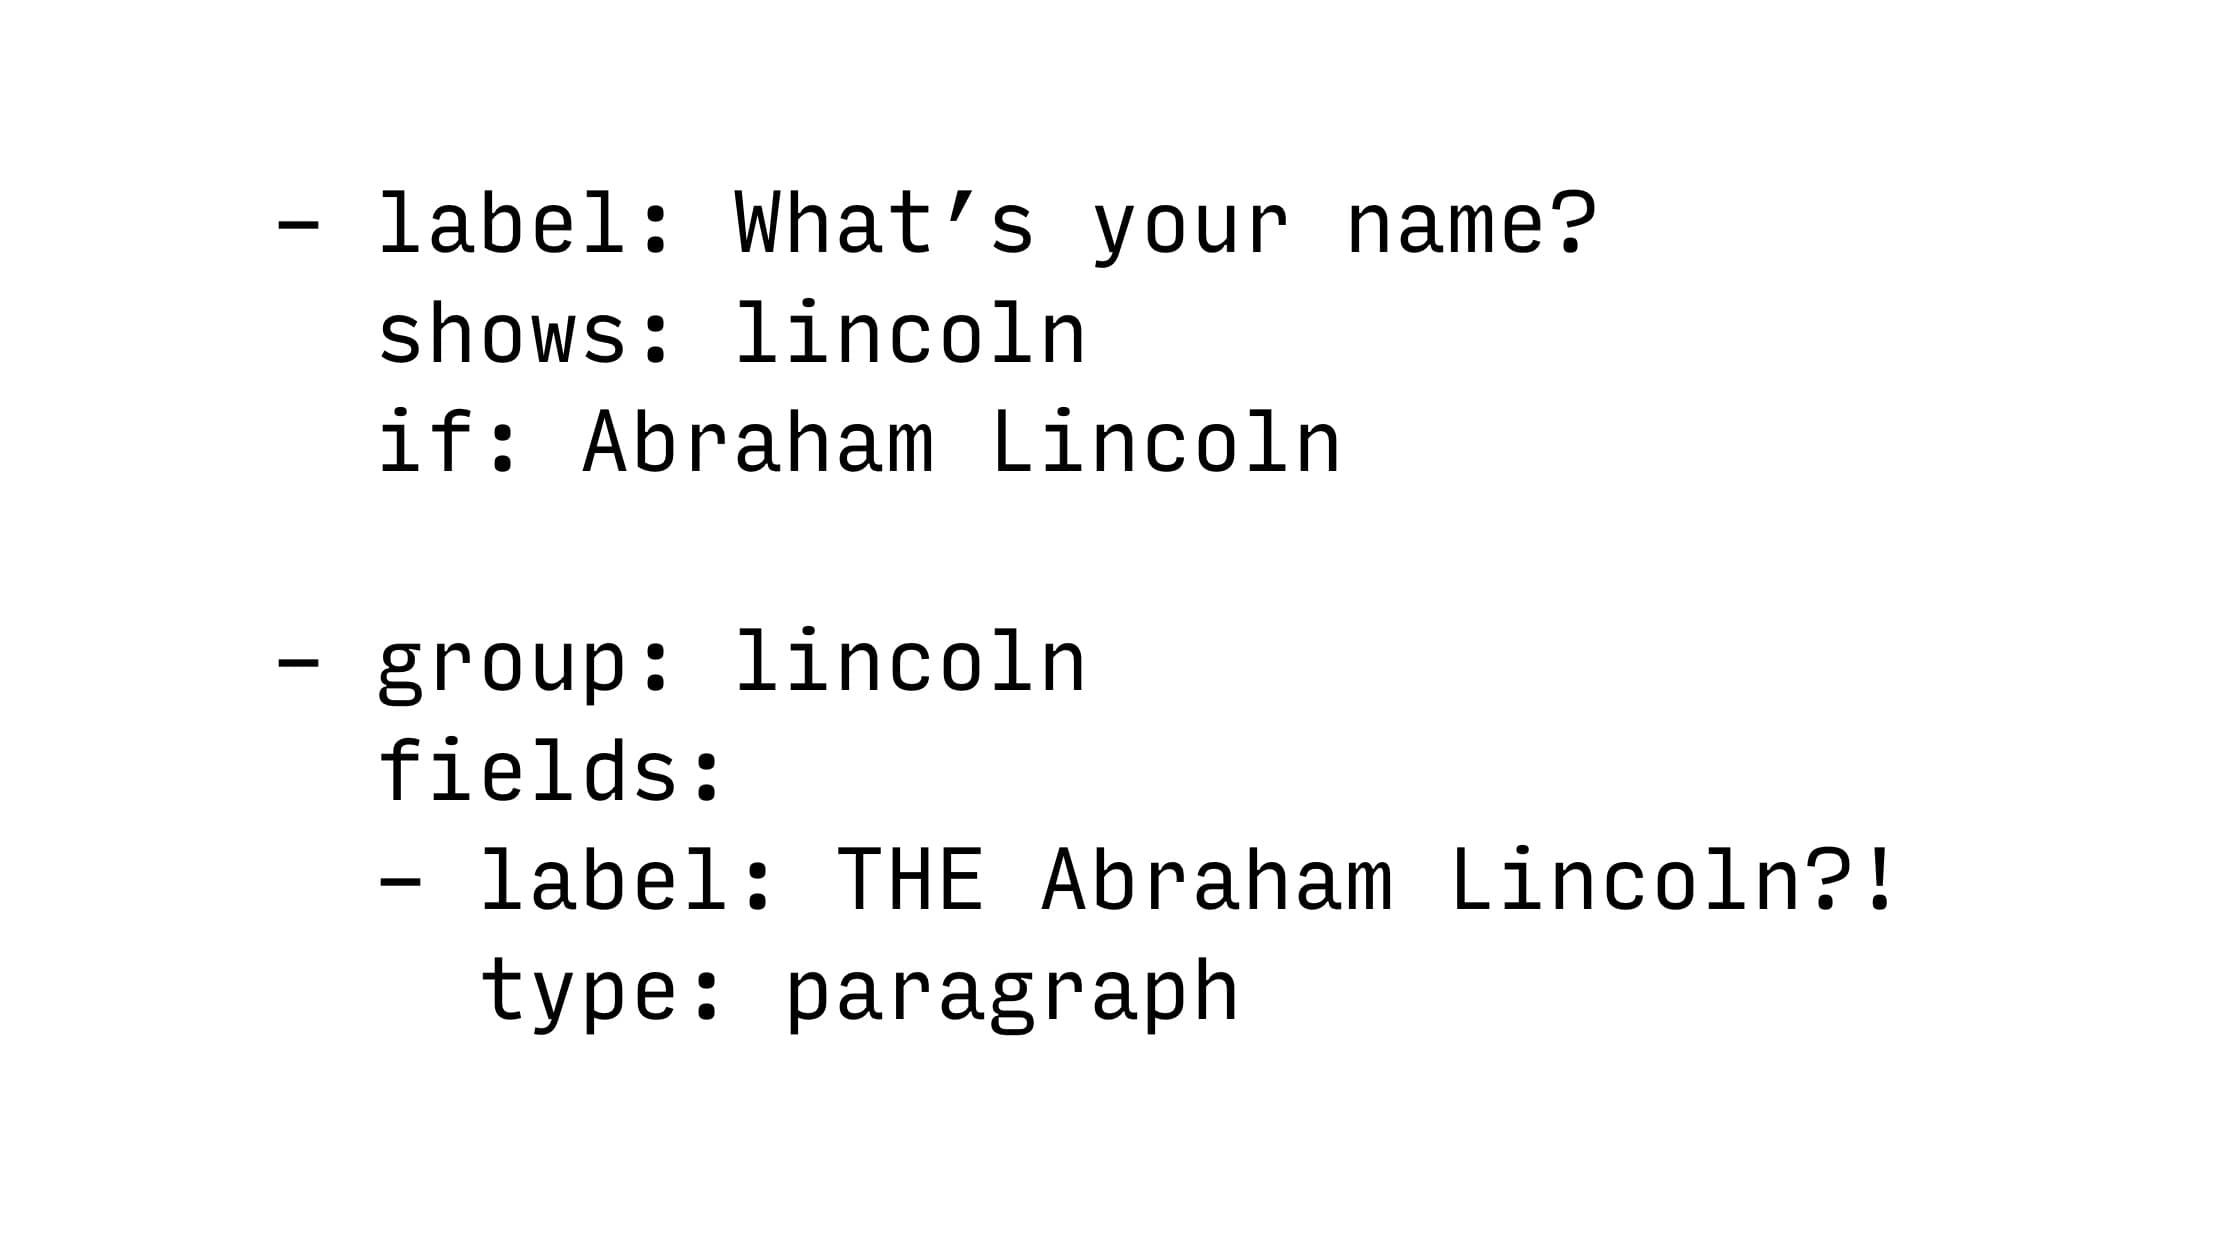 """Show """"THE Abraham Lincoln?!"""" if the answer to """"What's your name?"""" is """"Abraham Lincoln"""""""